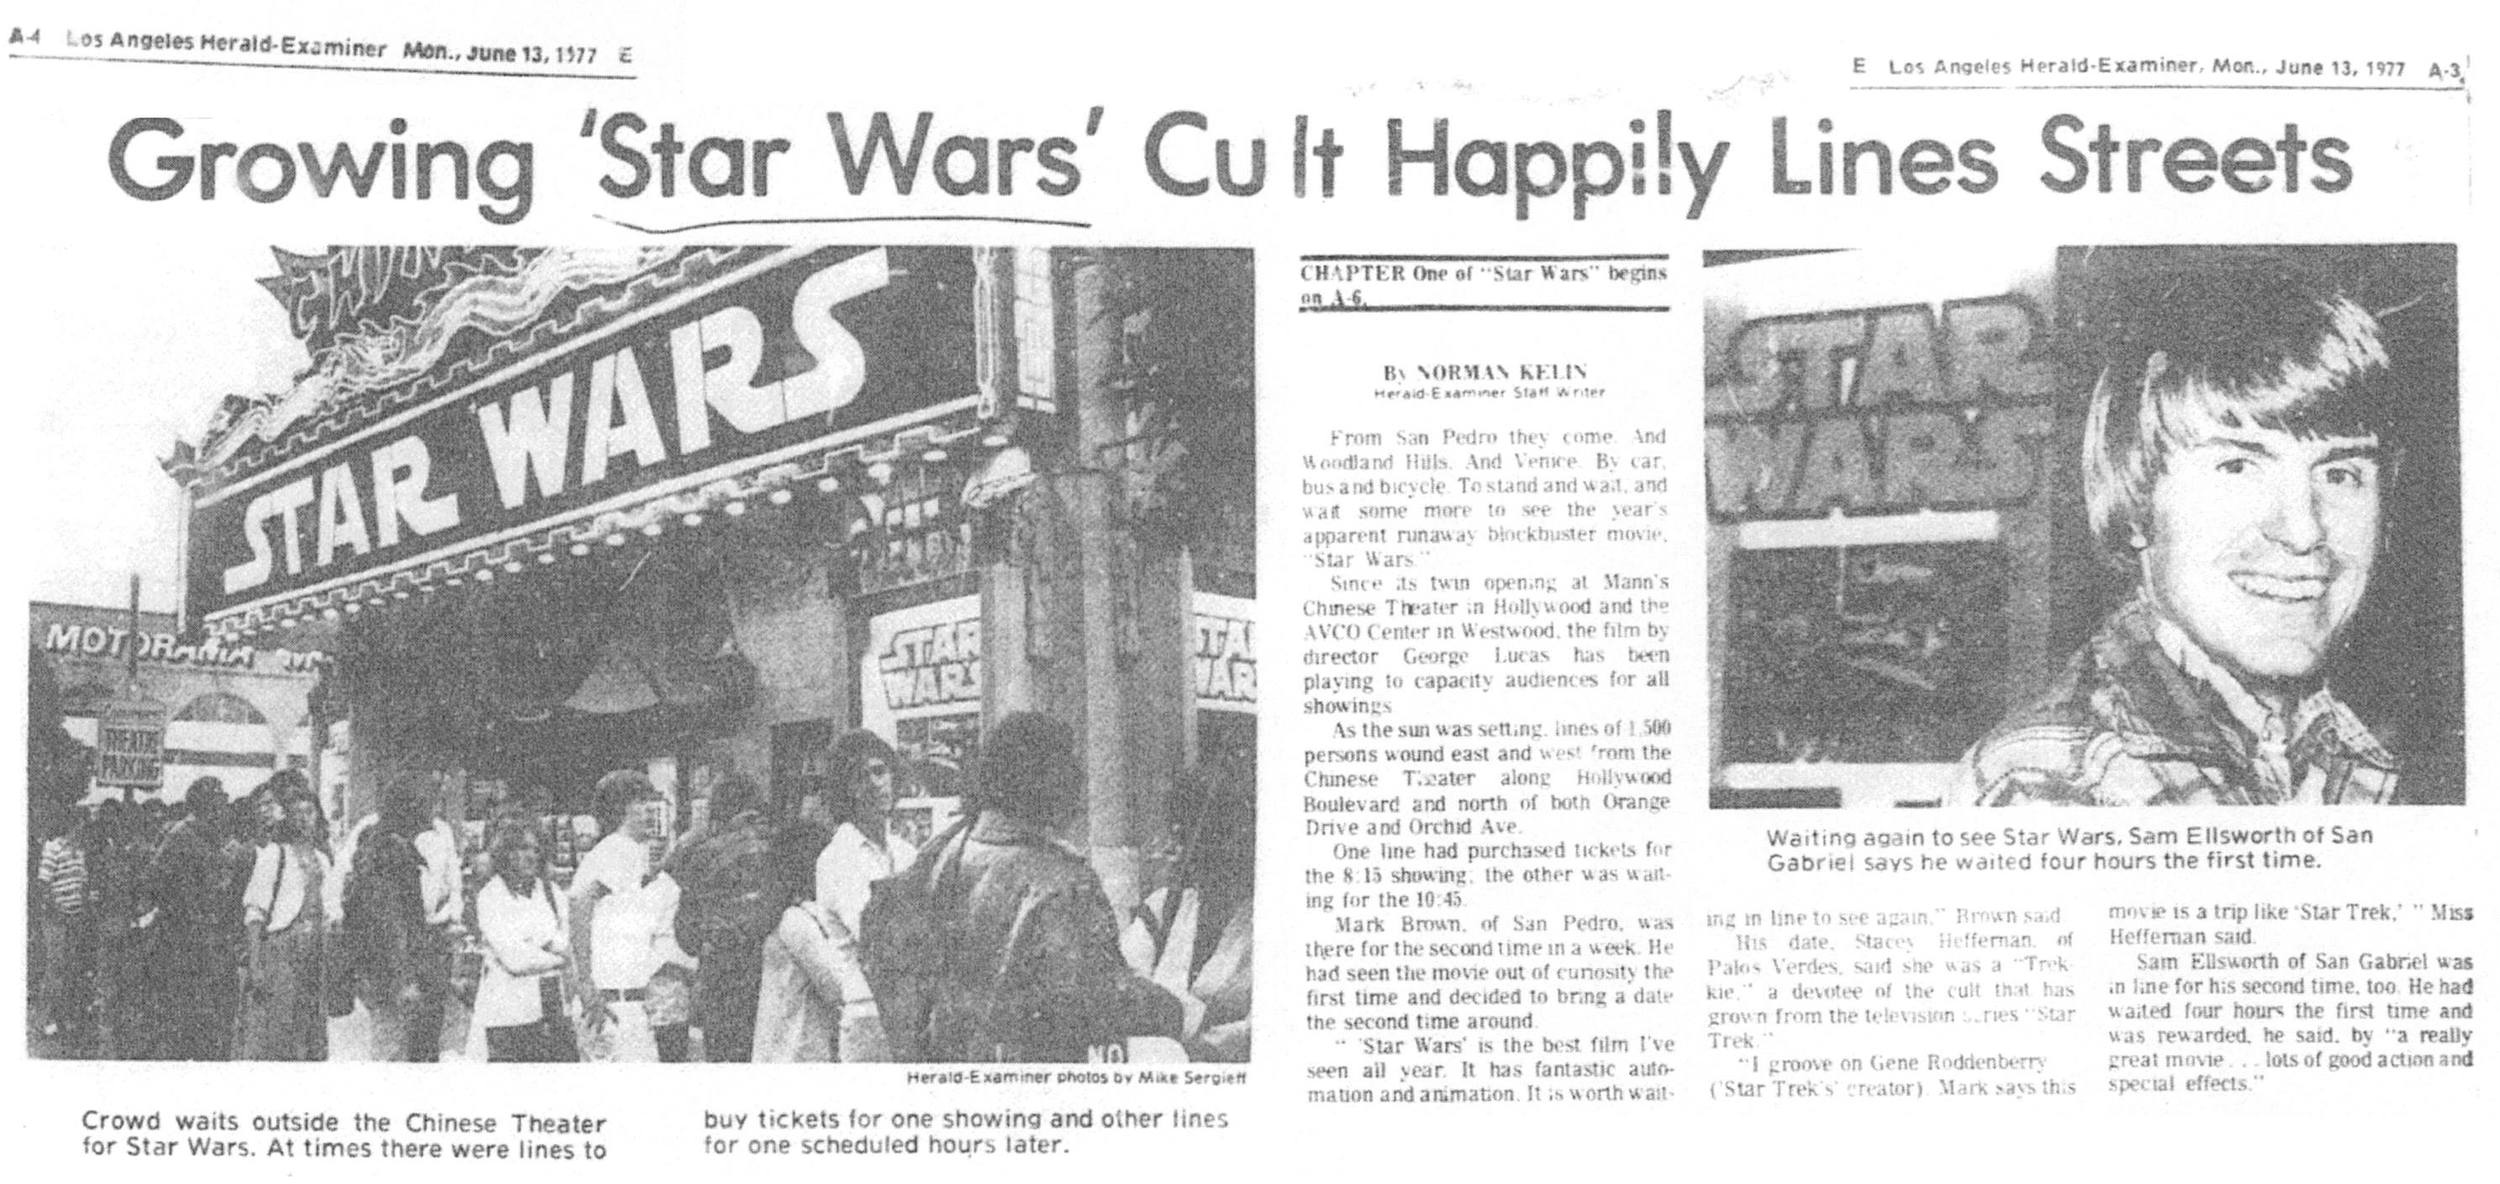 Star-Wars-Article-1977.jpg